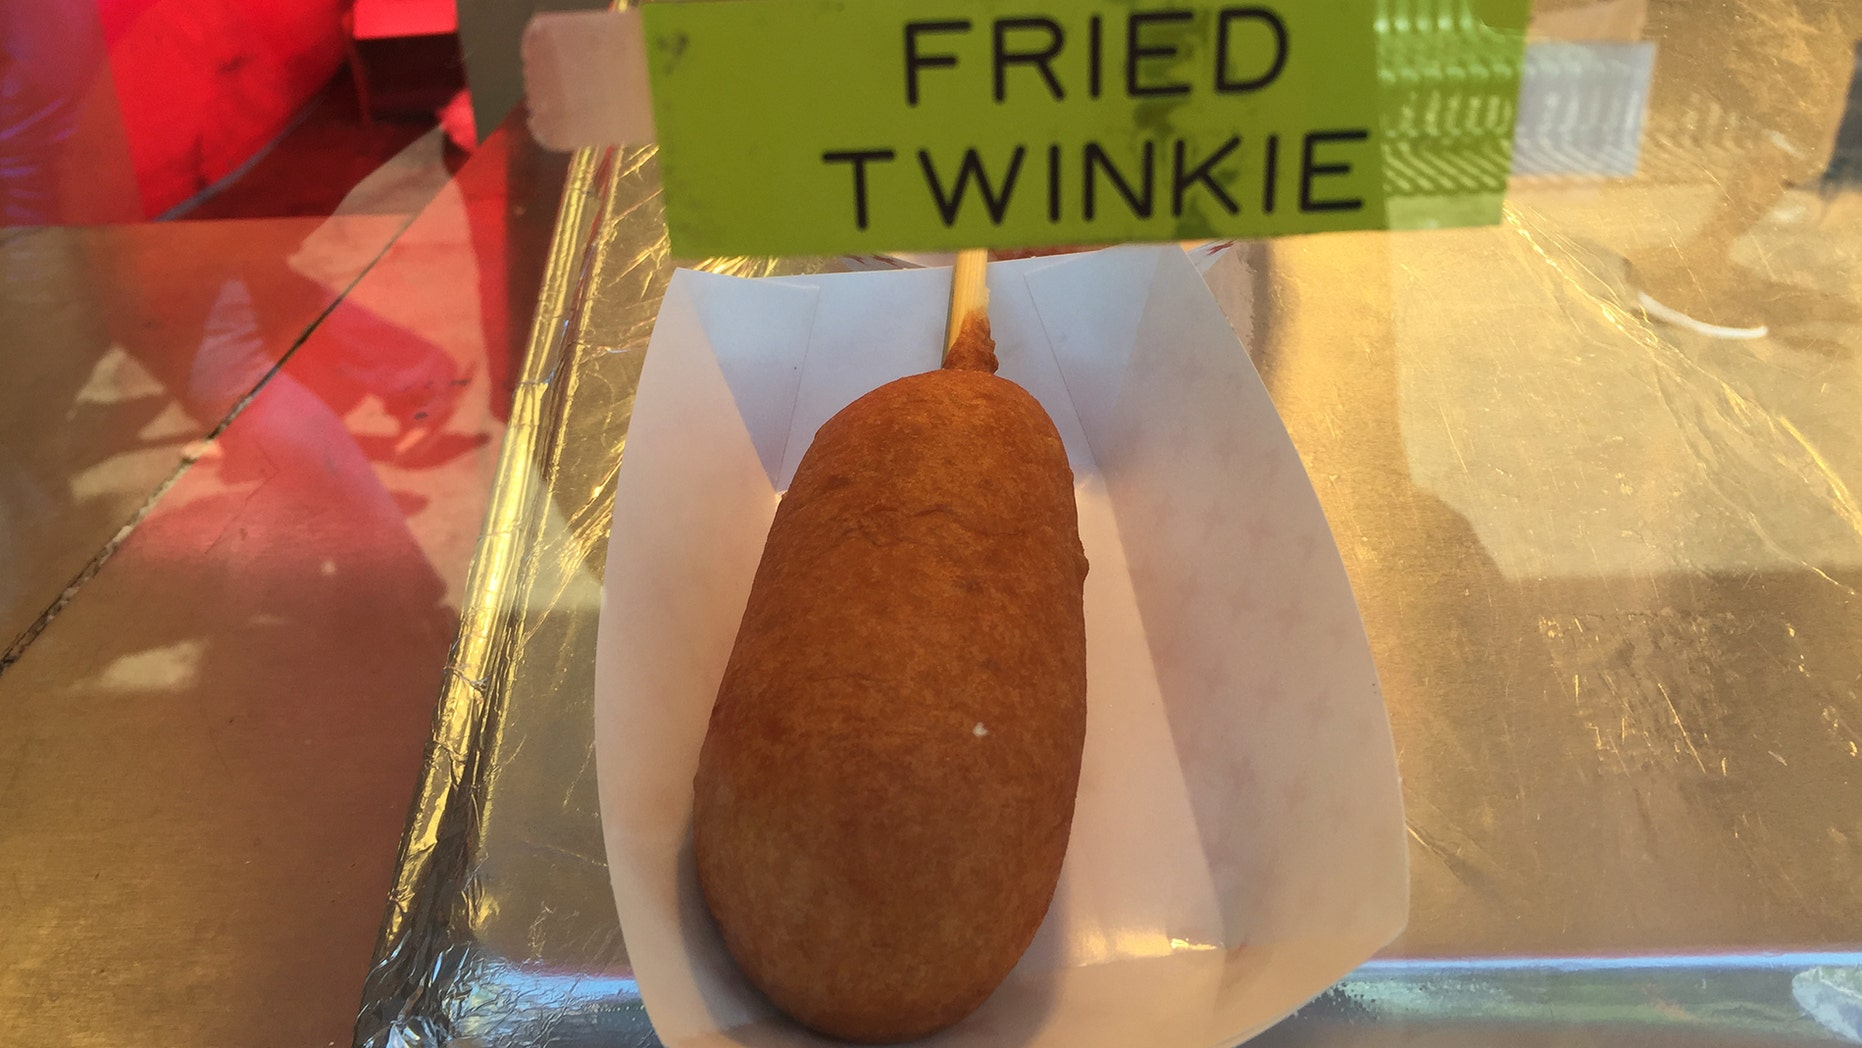 A fried twinkie.